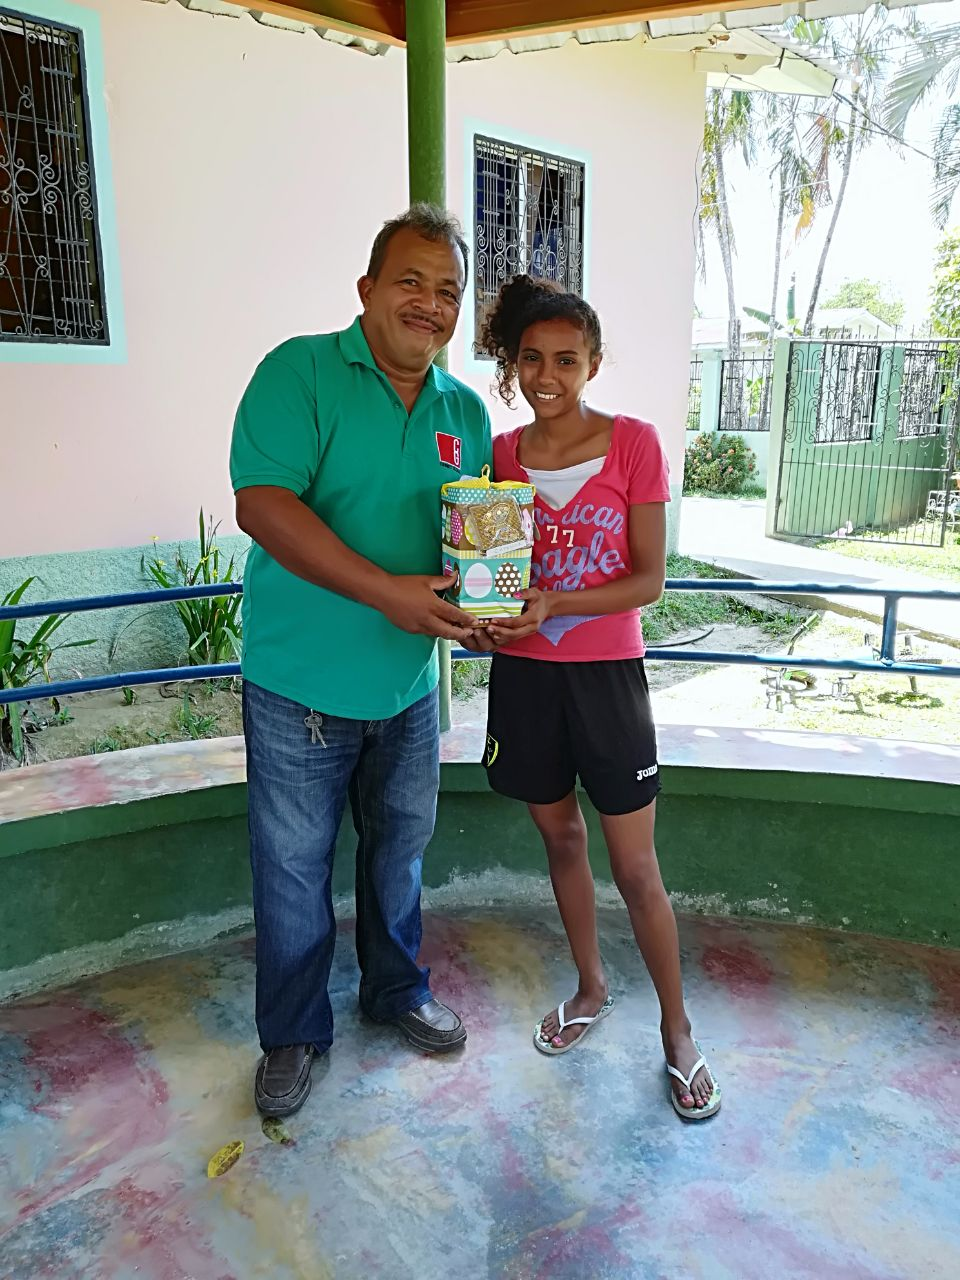 Connect Global National Director in Honduras, Jorge Amador, sharing easter baskets with the Kids from Little Lambs Refuge in La Masica, Honduras.